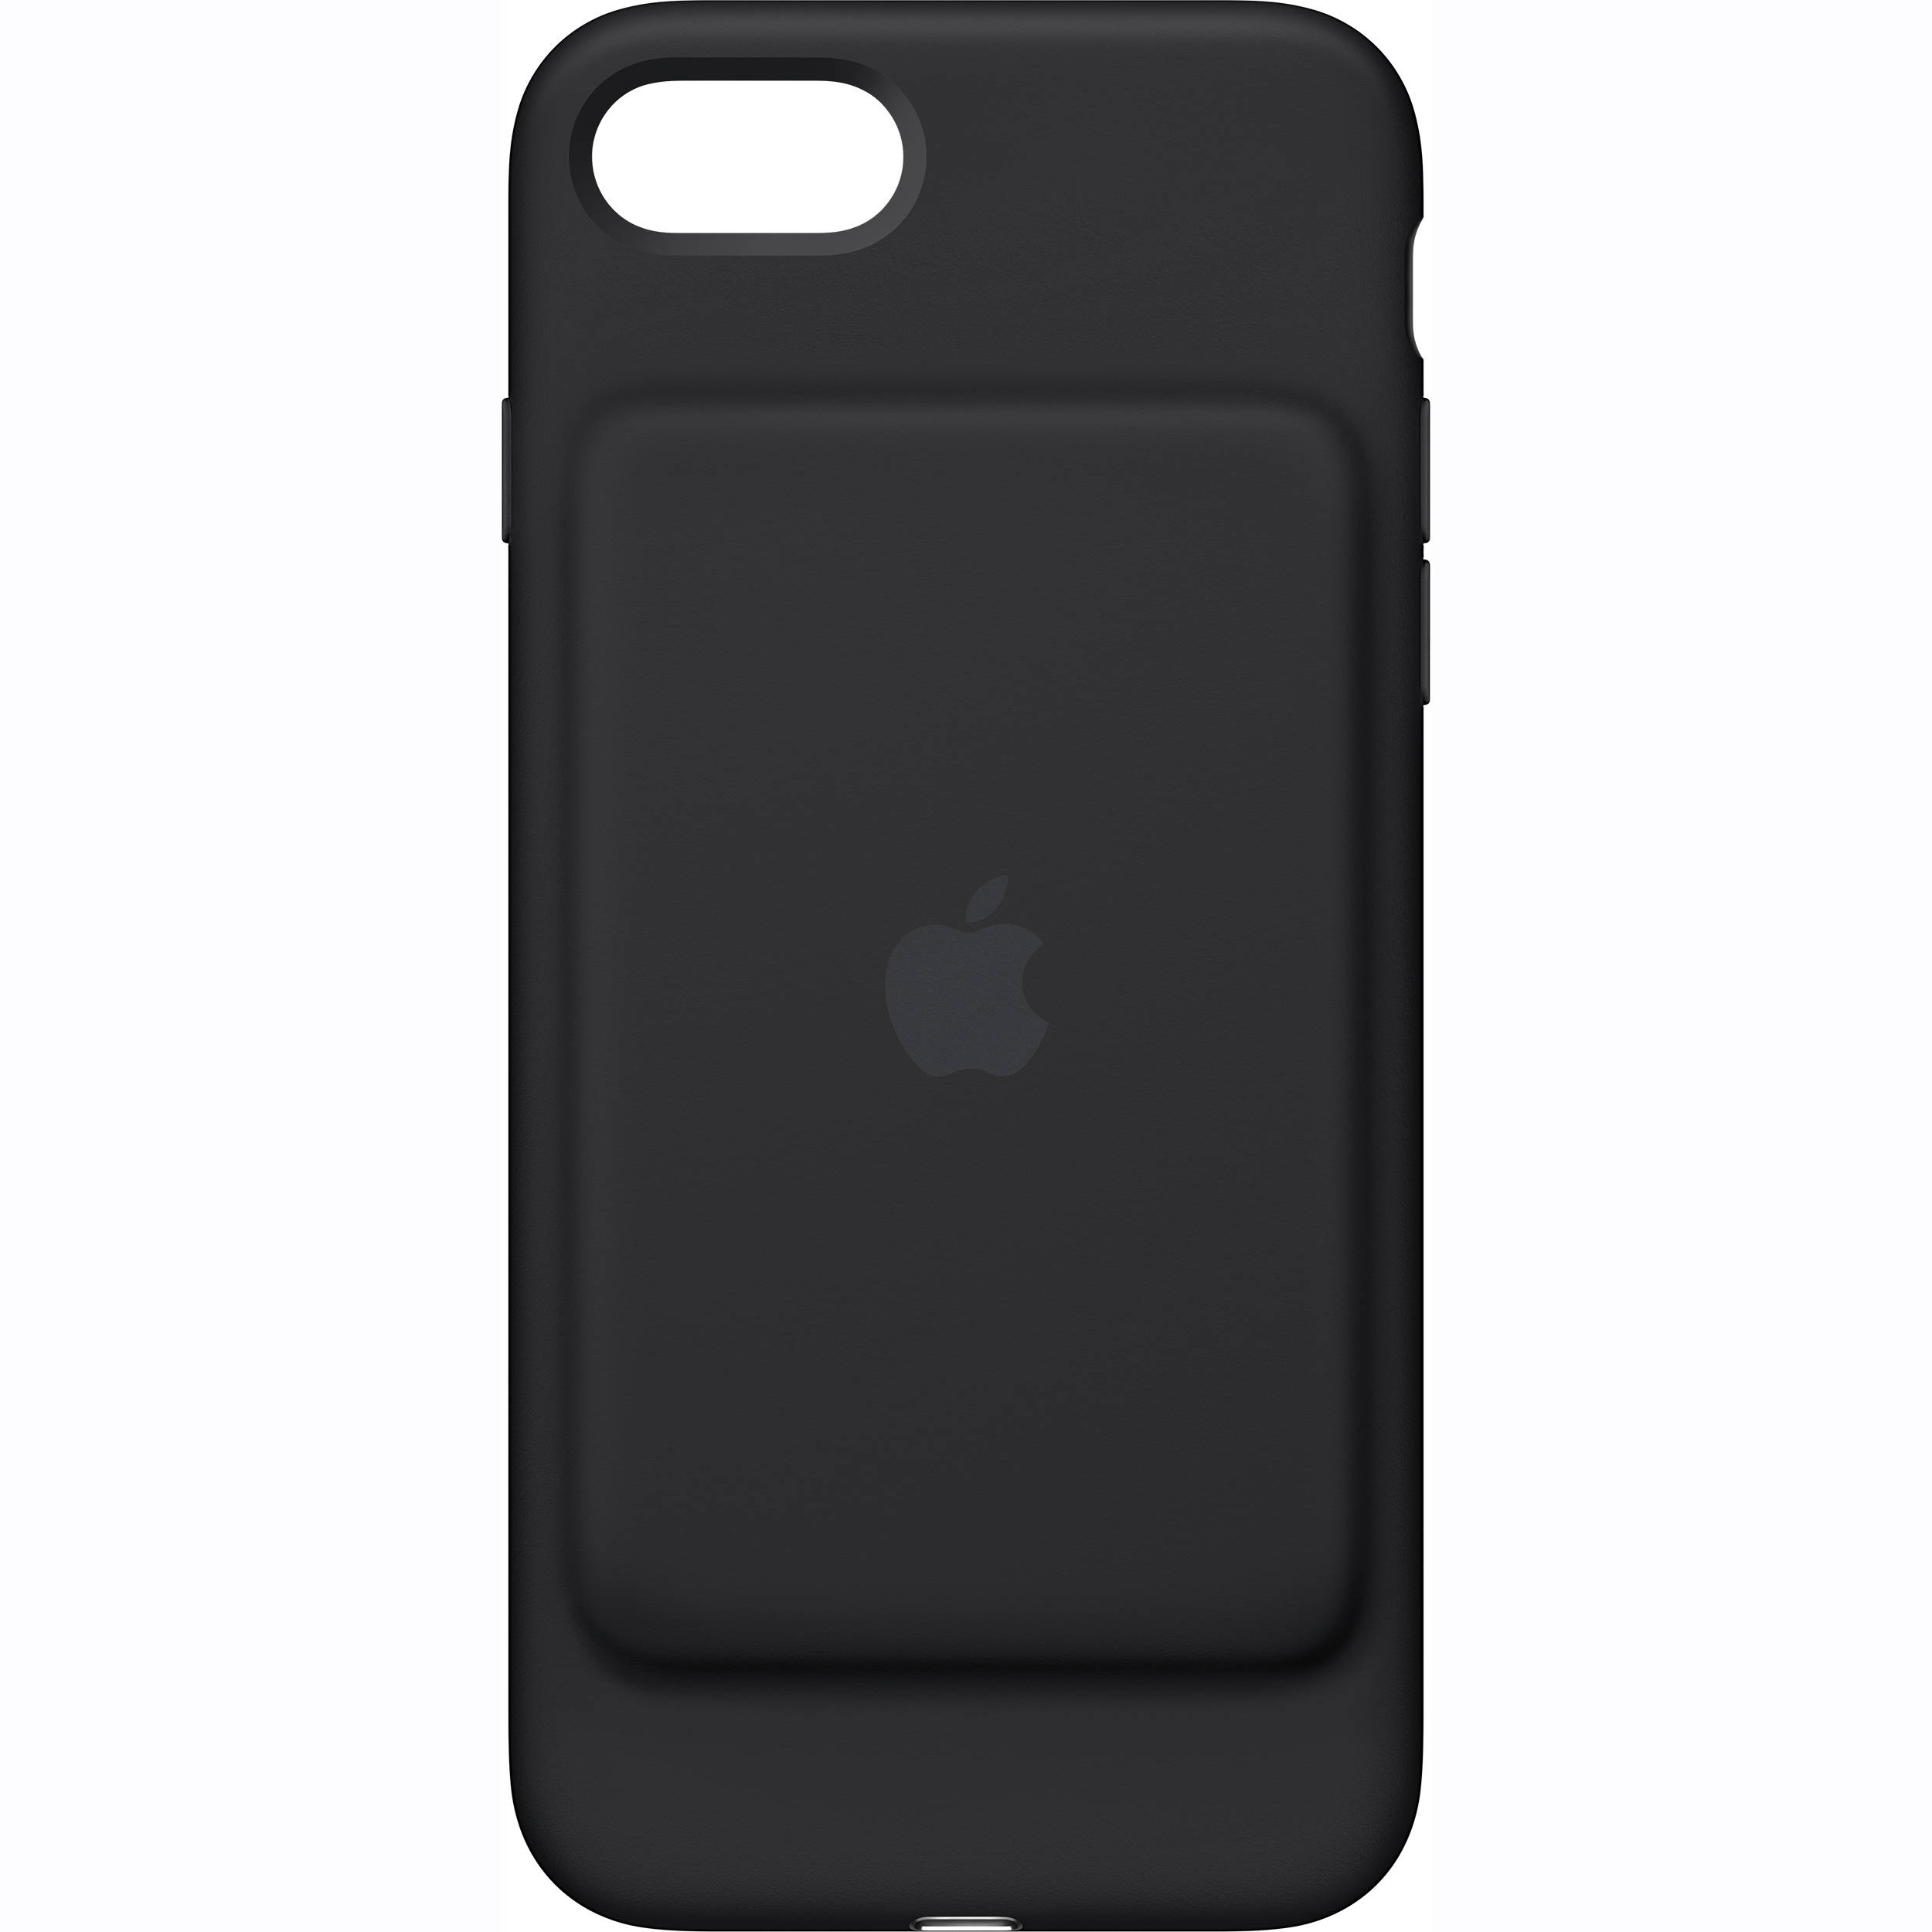 ff1aad97a28 Apple iPhone 7 Smart Battery Case (Black)